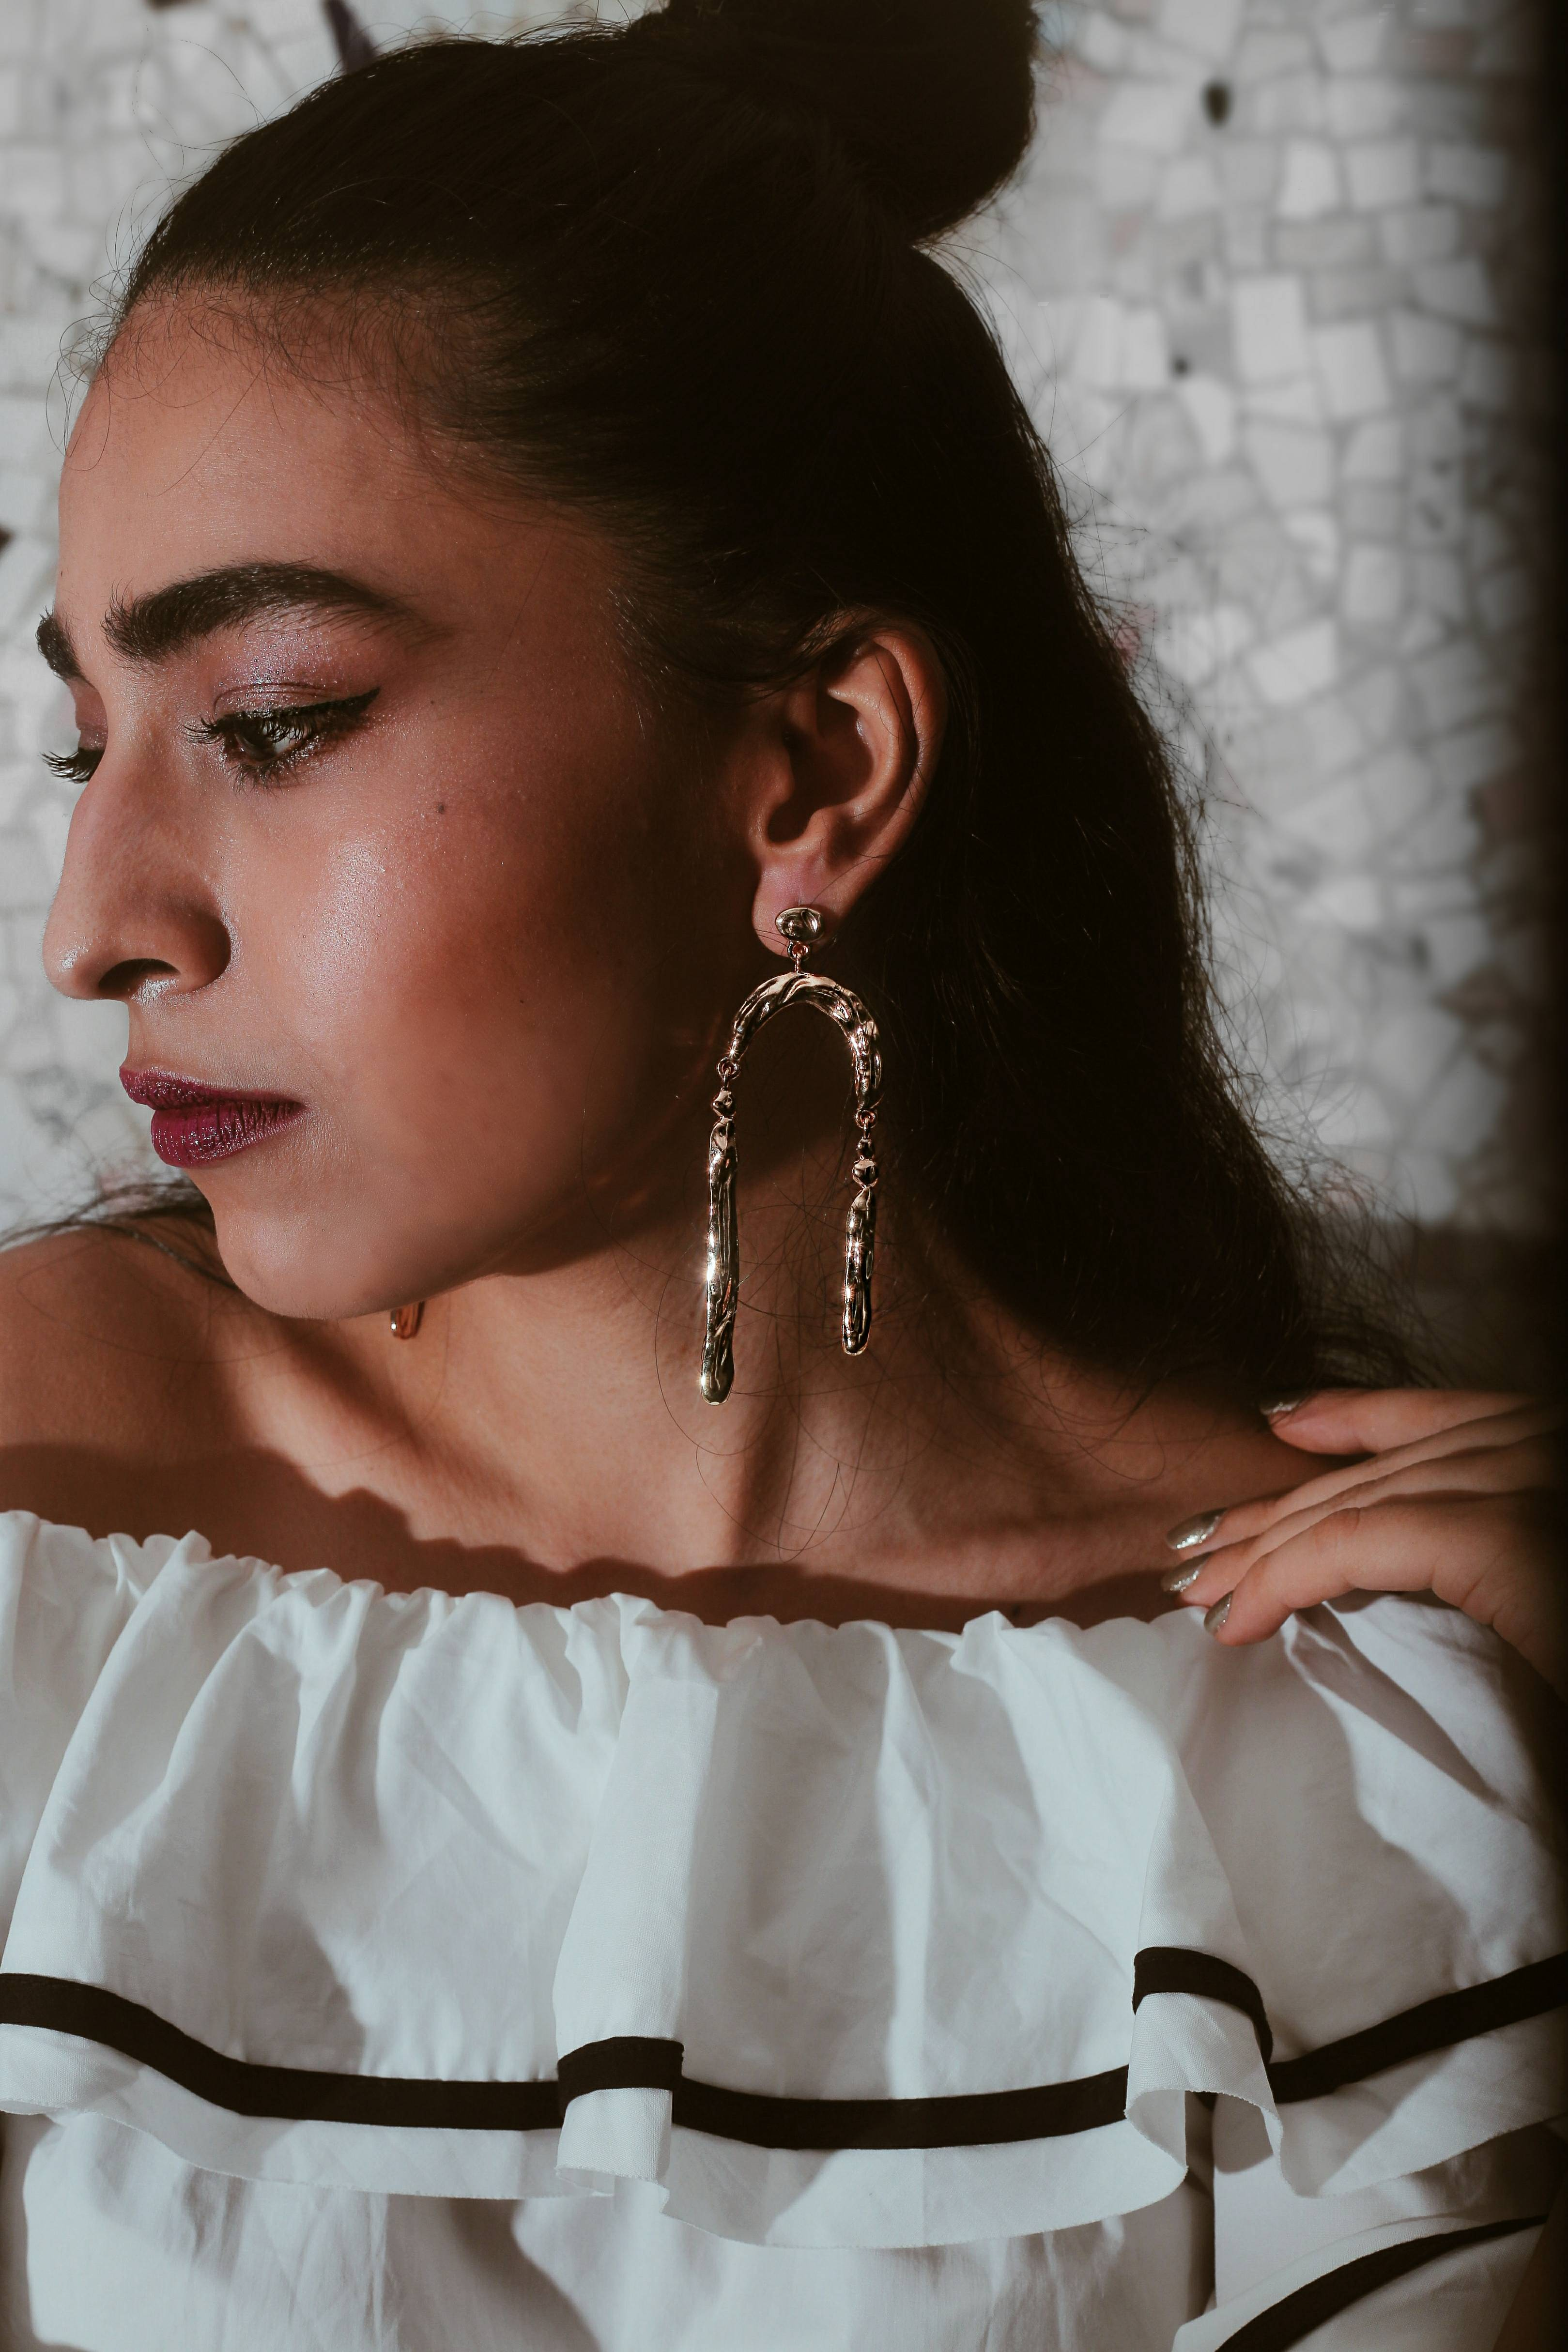 Earrings, accessories, jewelry, statement piece, statement jewelry, jewellery, makeup, editorial shoot, contouring, gold jewelry, minimal, miss match earrings